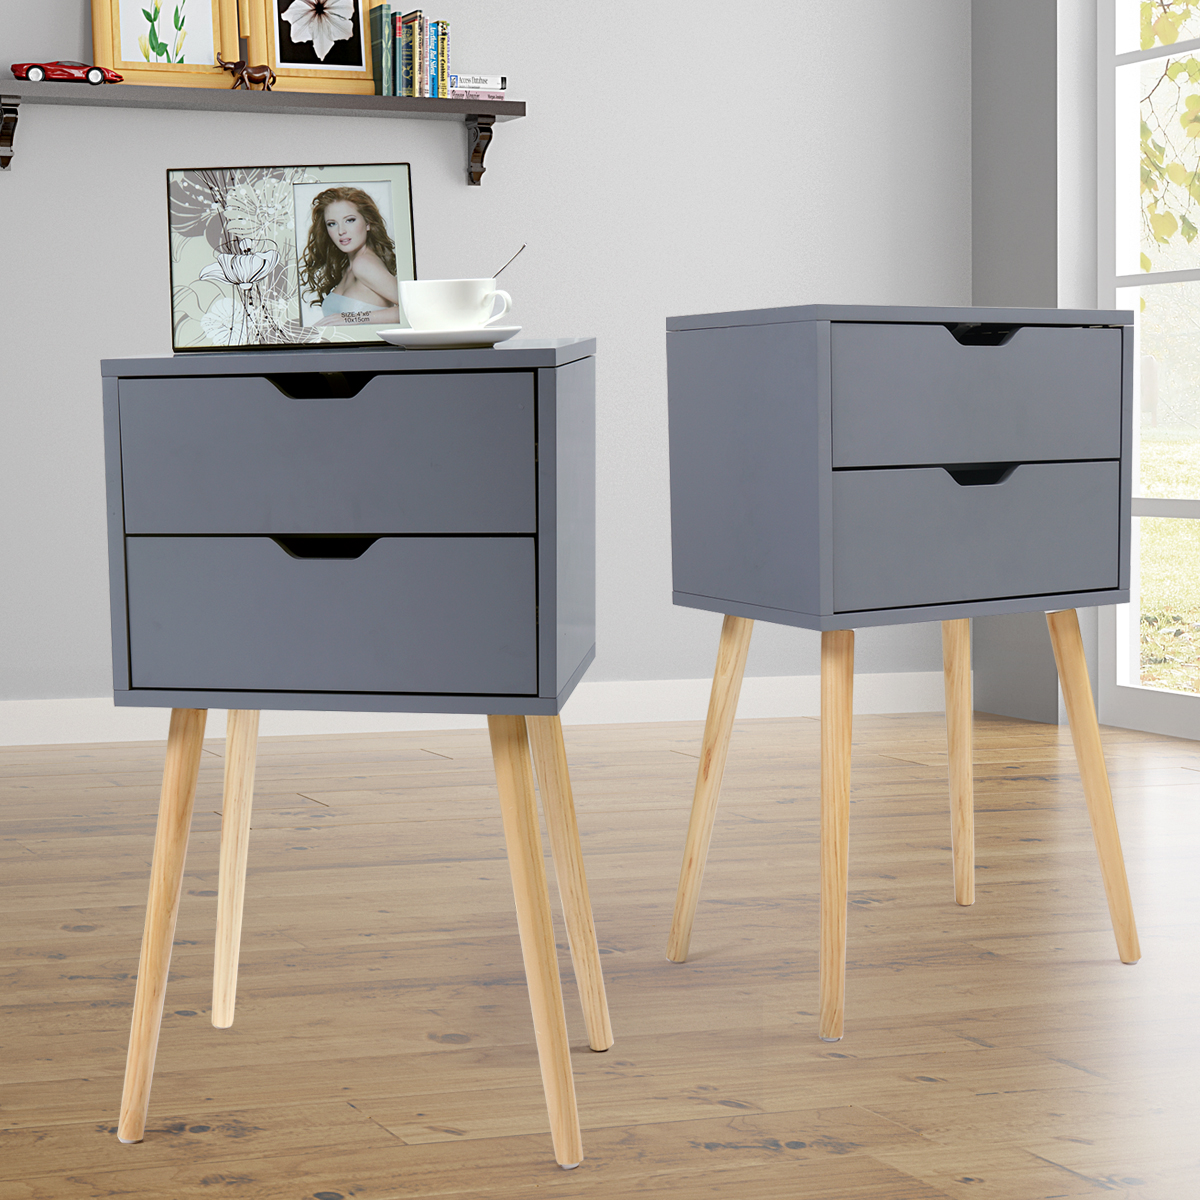 Jaxpety Set Of 2 Mid Century Modern Nightstand Bedside Table Sofa End Table Bedroom Decor 2 Drawers Storage With Solid Wood Legs Gray Walmart Com Walmart Com